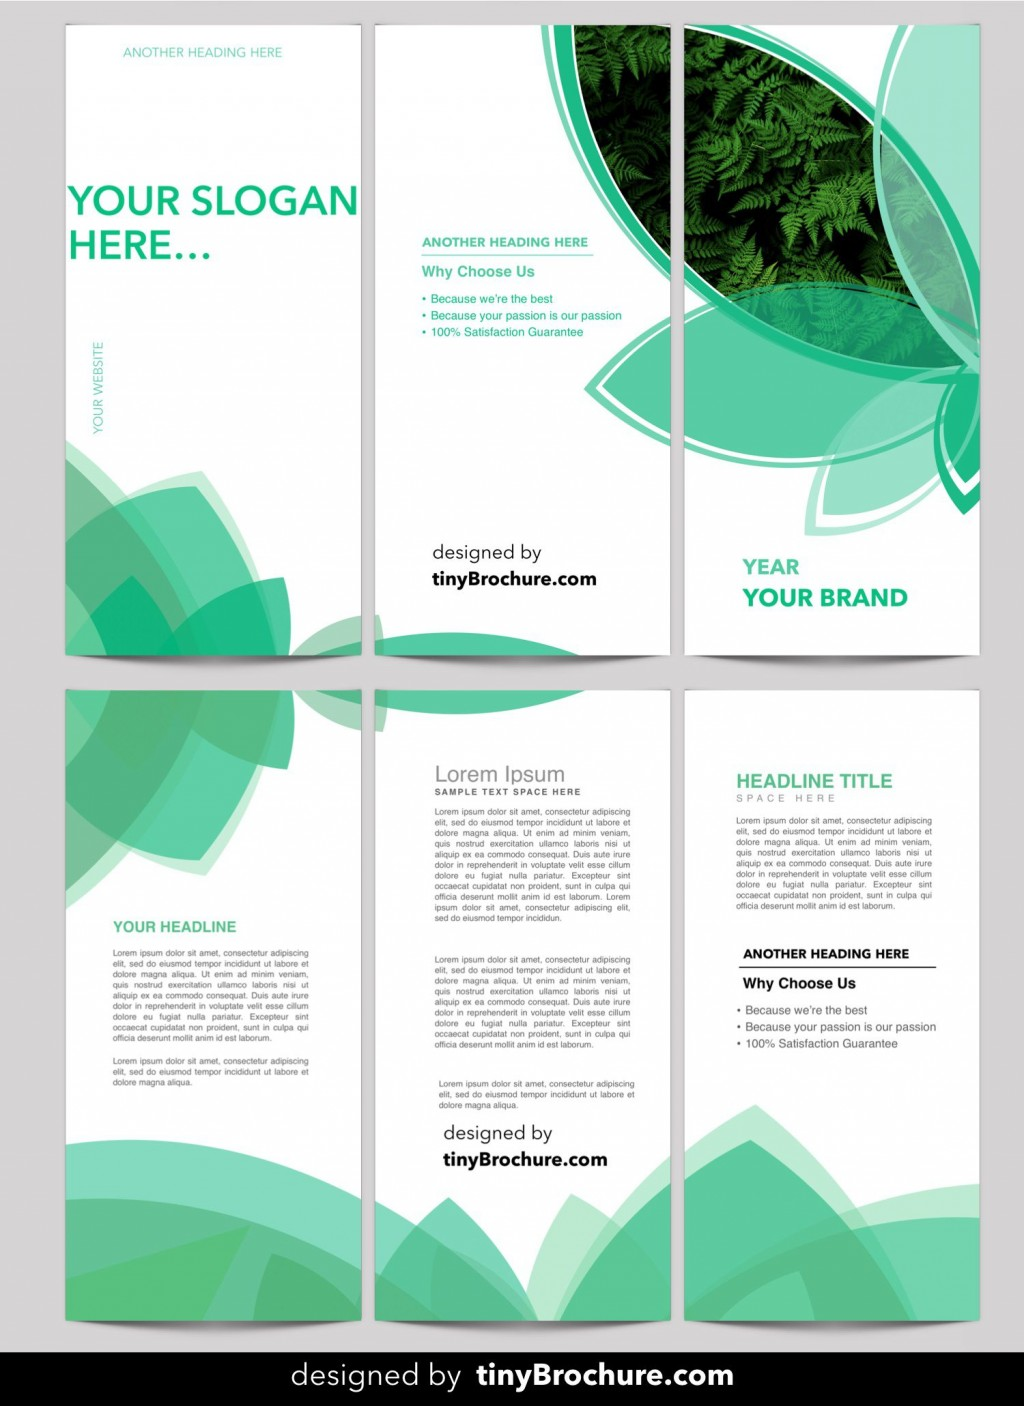 000 Breathtaking Brochure Template Free Download High Definition  Microsoft Publisher Corporate Psd For Adobe IllustratorLarge